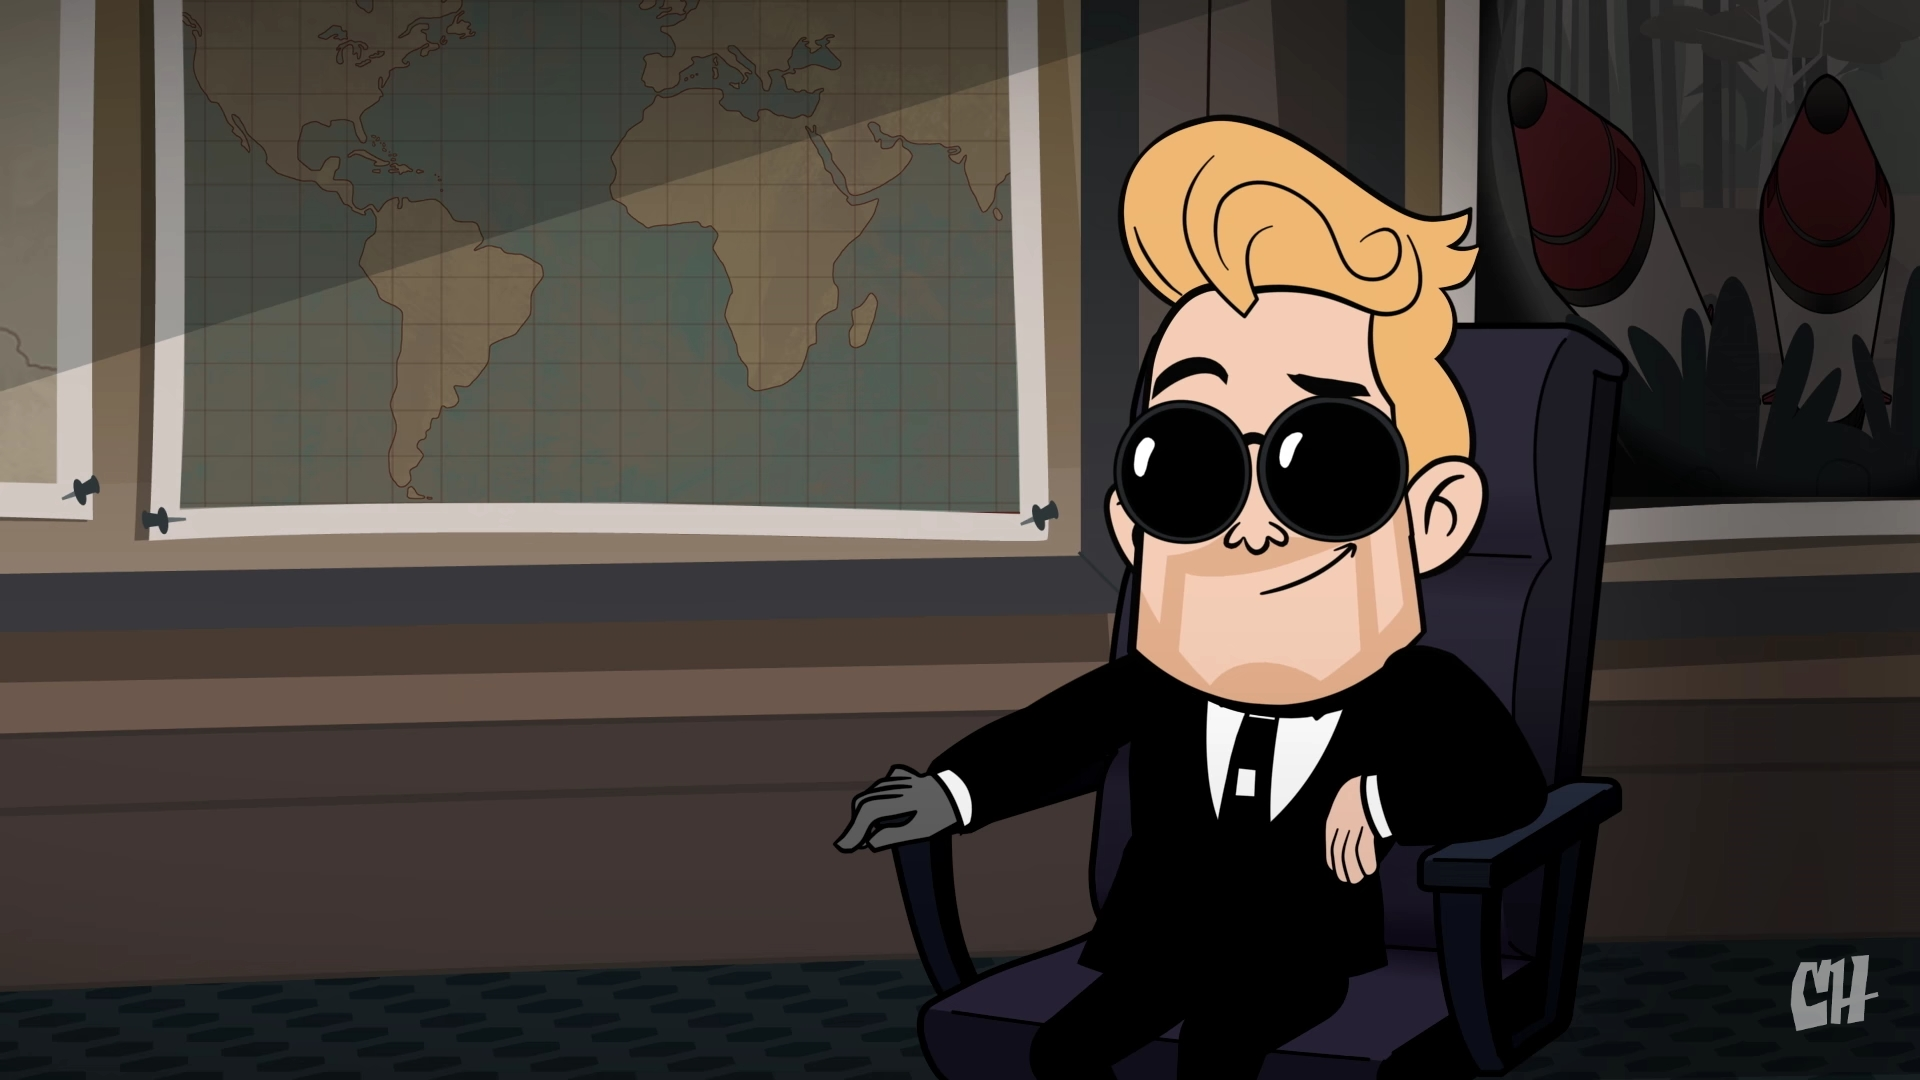 Adam Ruins Everything including maps MapsWithoutNZ 1920x1080